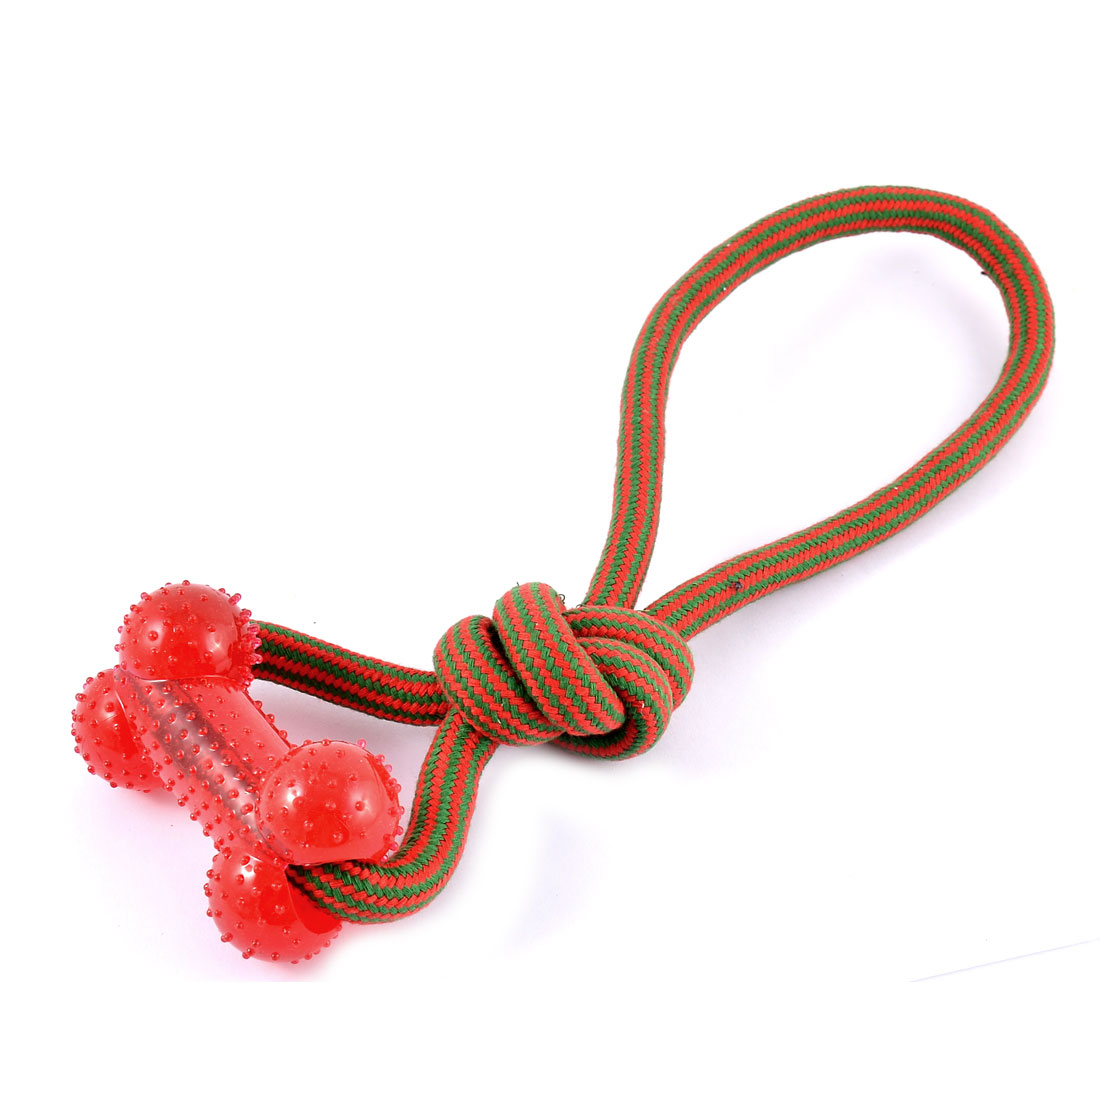 Unique Bargains Pet Puppy Dog Teeth Cleanning Chew Bone Knotted Braided Rope Red Green